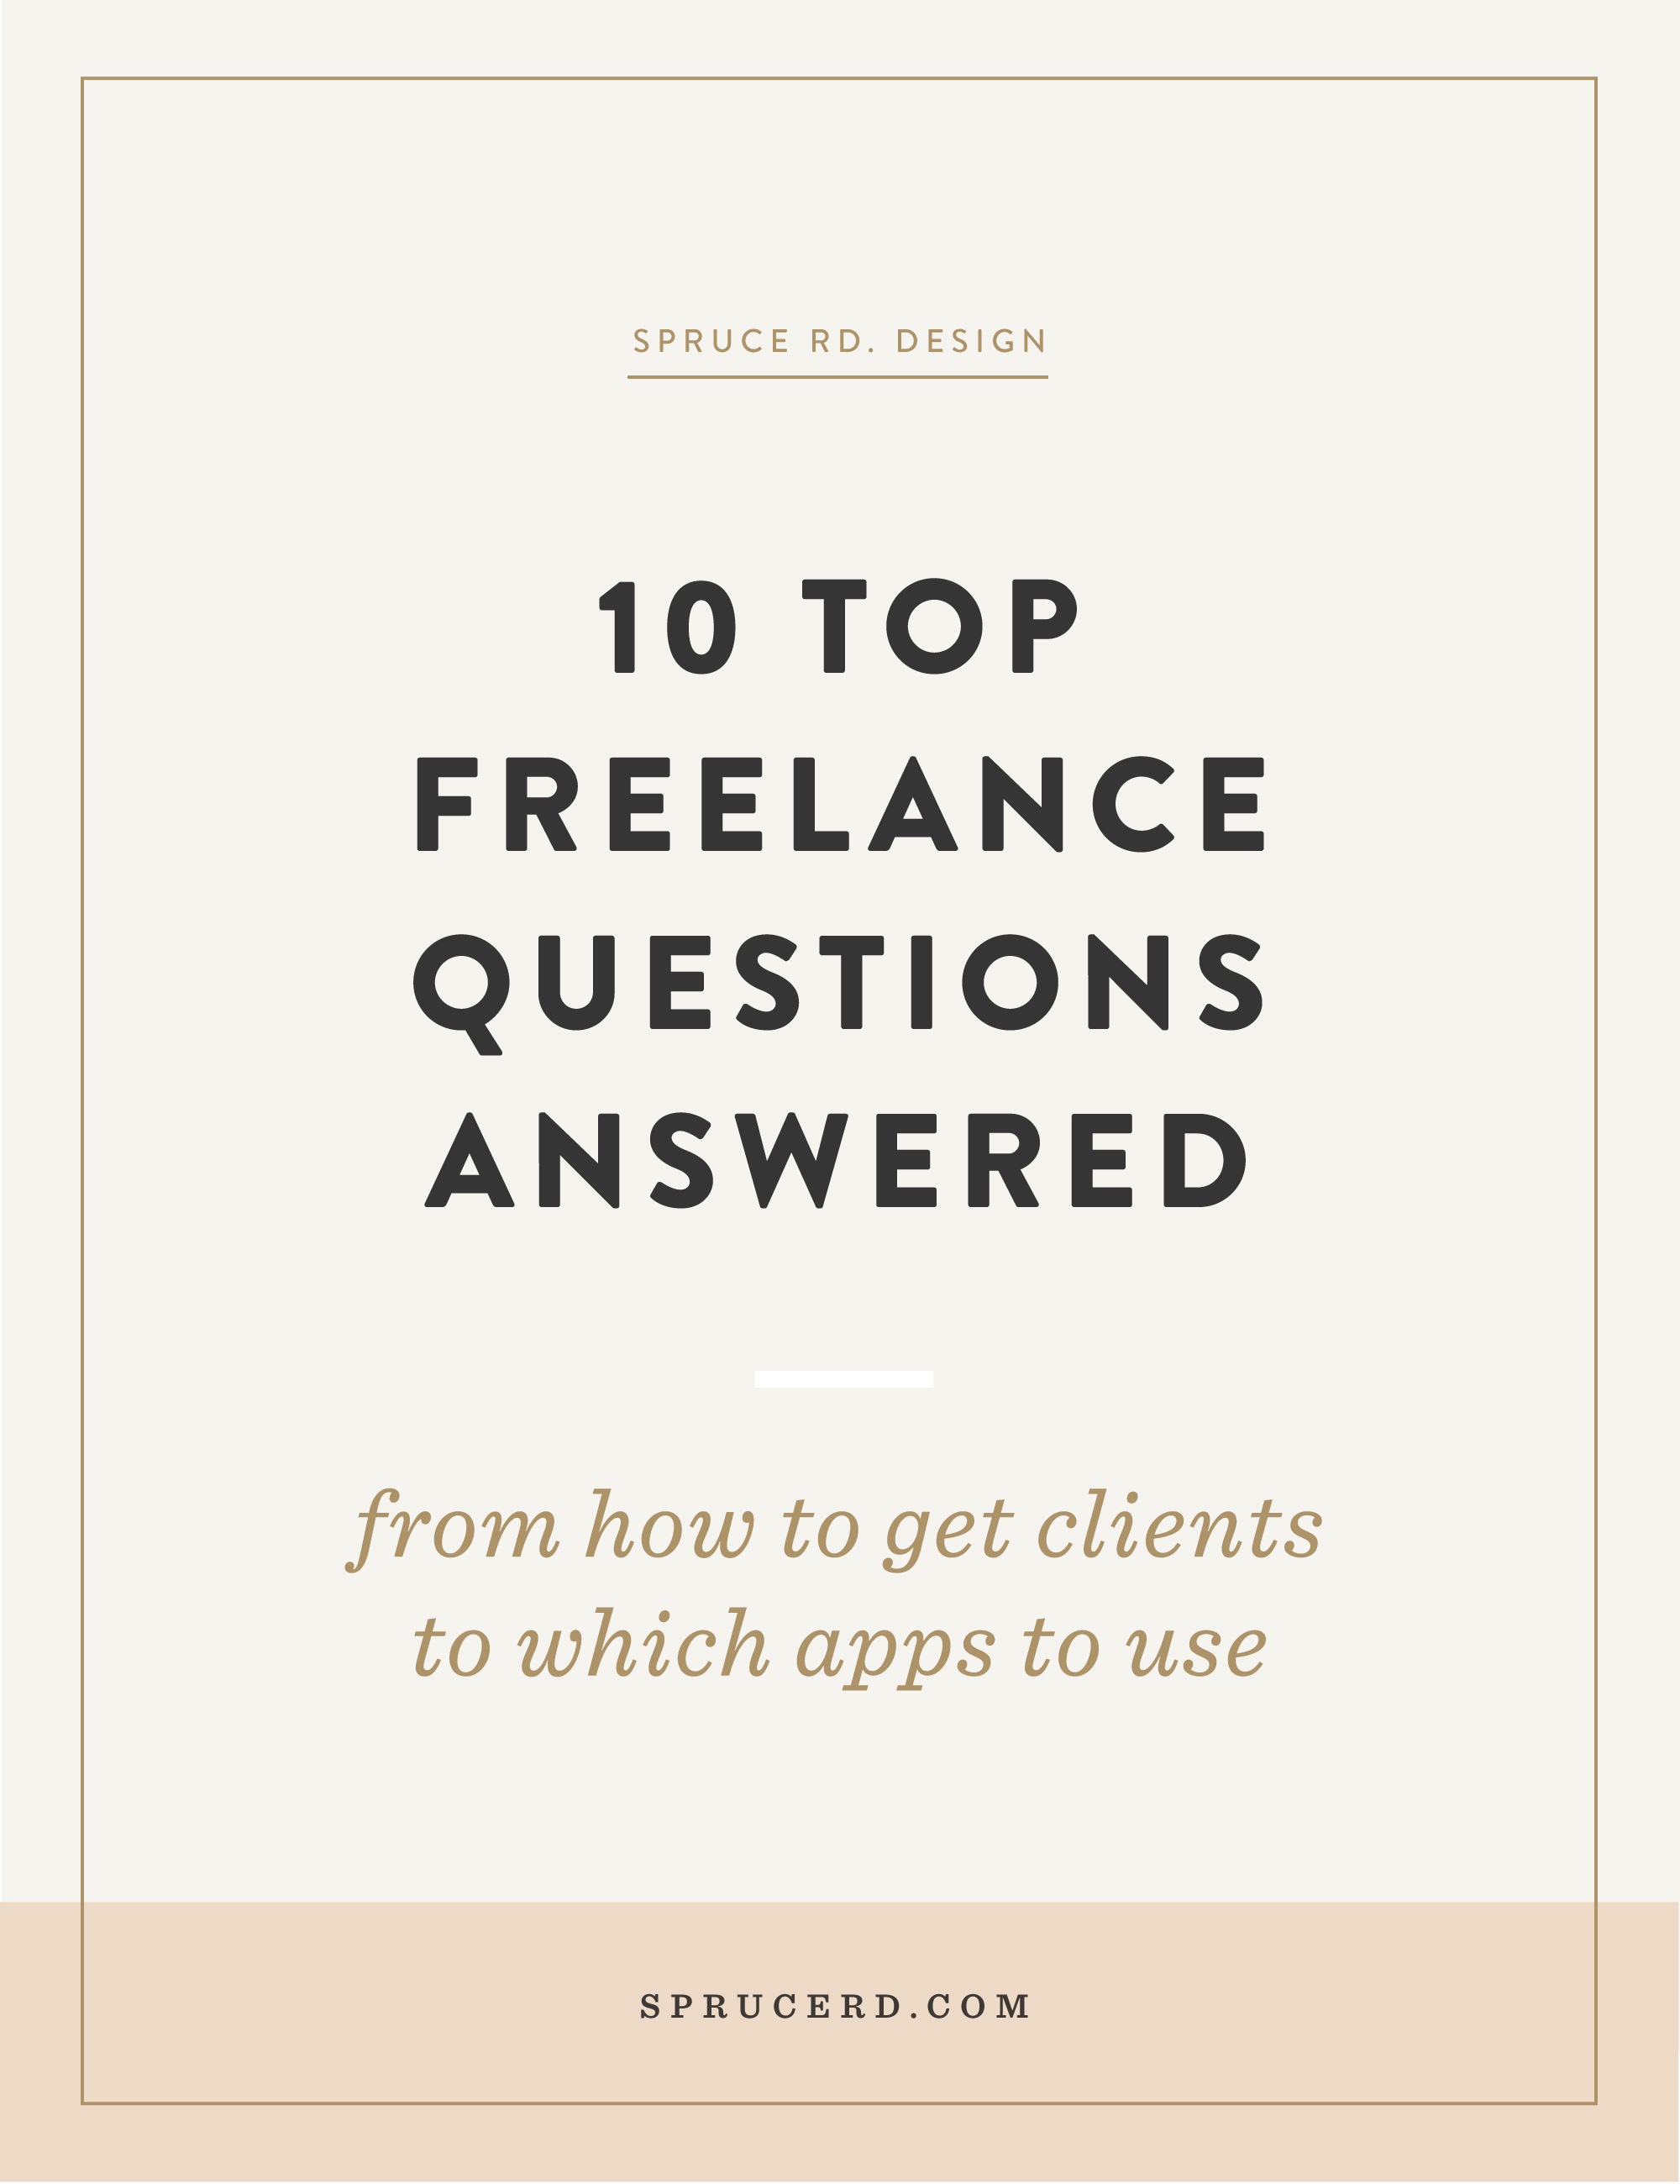 Spruce Rd. | 10 questions answered about freelancing | Over the past couple years, I've received loads of inquiries on freelancing. Everything from how to get started, to the nitty gritty of working with clients. I've seen a few questions continuously pop up in my inbox. Though each of these could be its own blog post (and maybe it already exists on my blog), I thought I'd dive in rapid fire style and answer a few of your Q's!